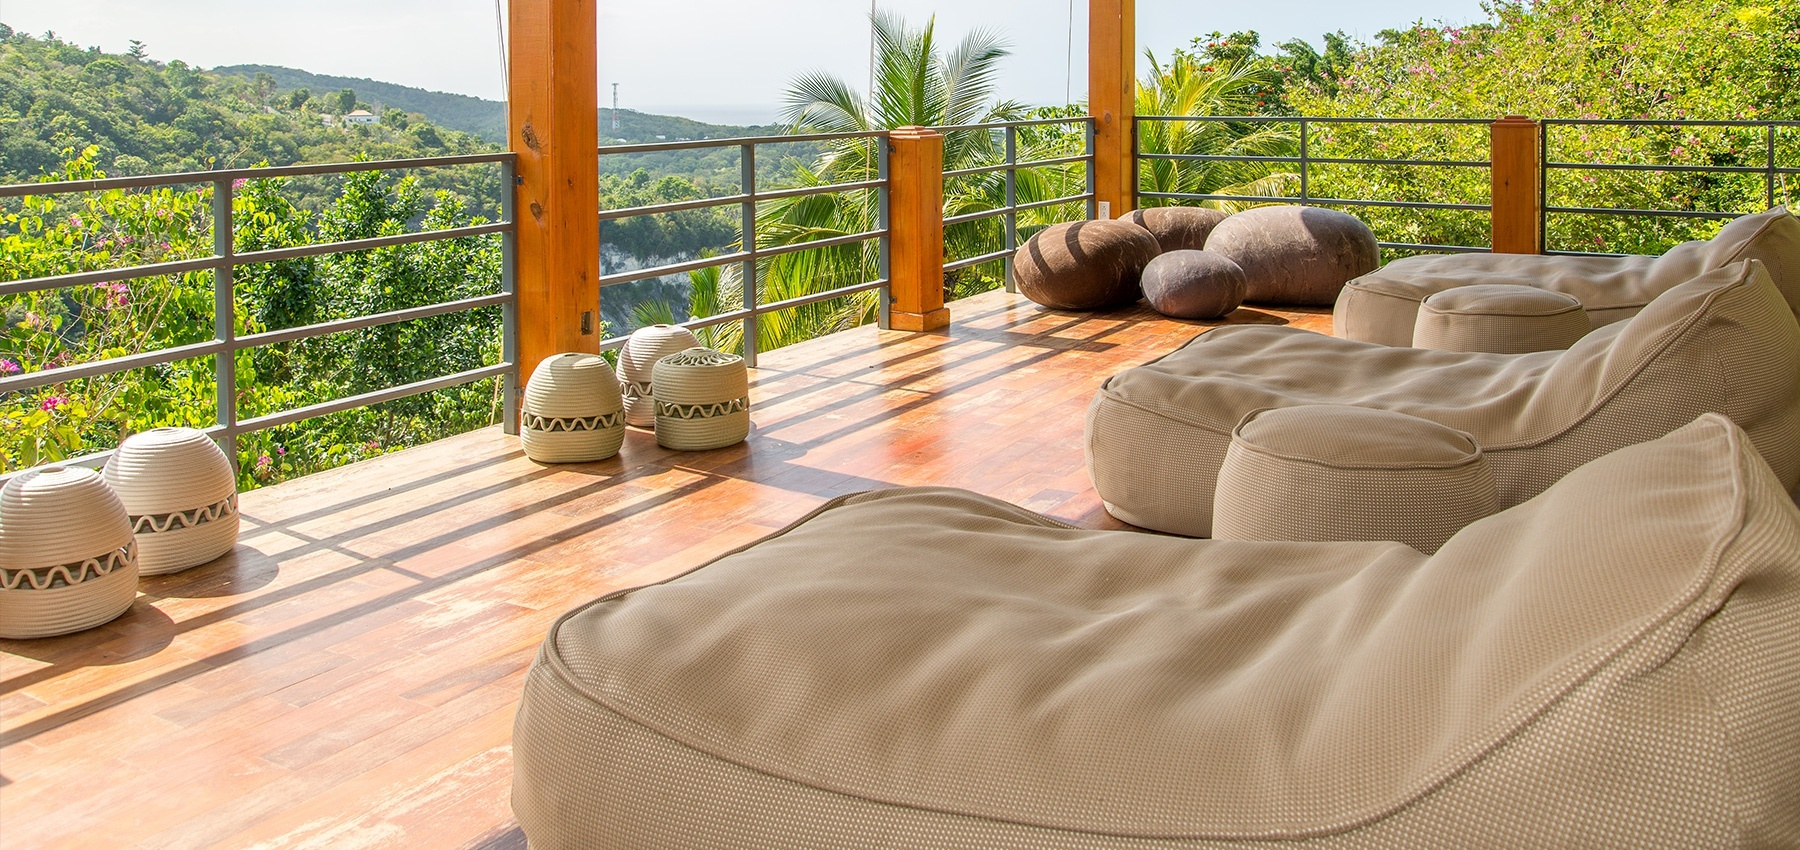 Yoga terrace at Destiny Villa